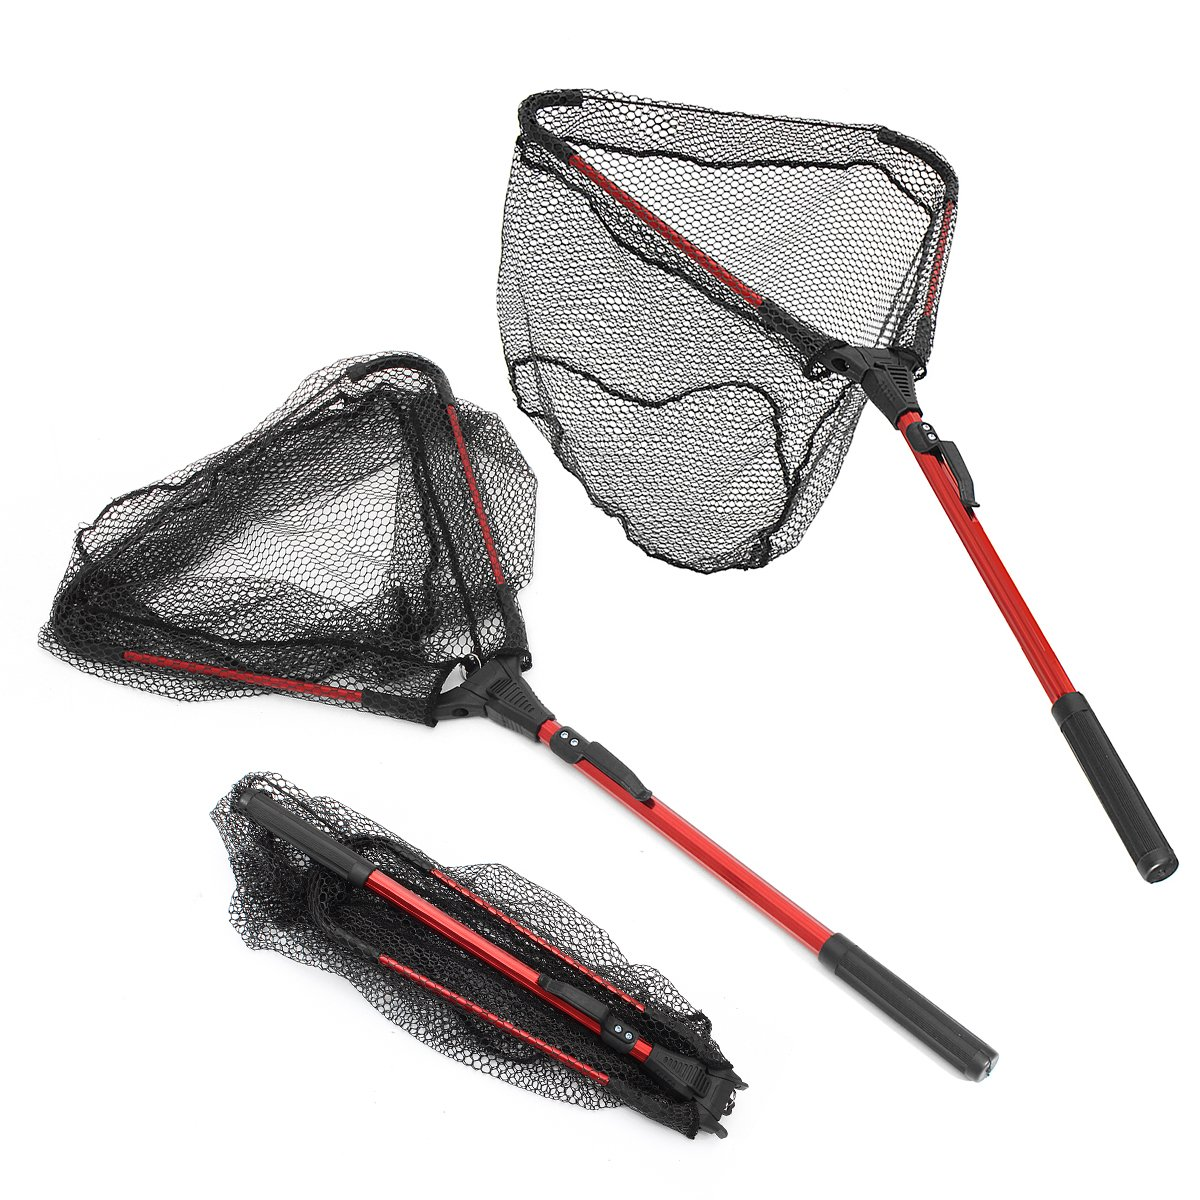 80Cm Black Red Aluminum Alloy Single Triangular Folding Fishing Net \ Lobster Salmon Trap Beach Line Eels Set Trout Fly Lure Catfish Rod Reels Sea Pole Minow Bait Fish Box Generic